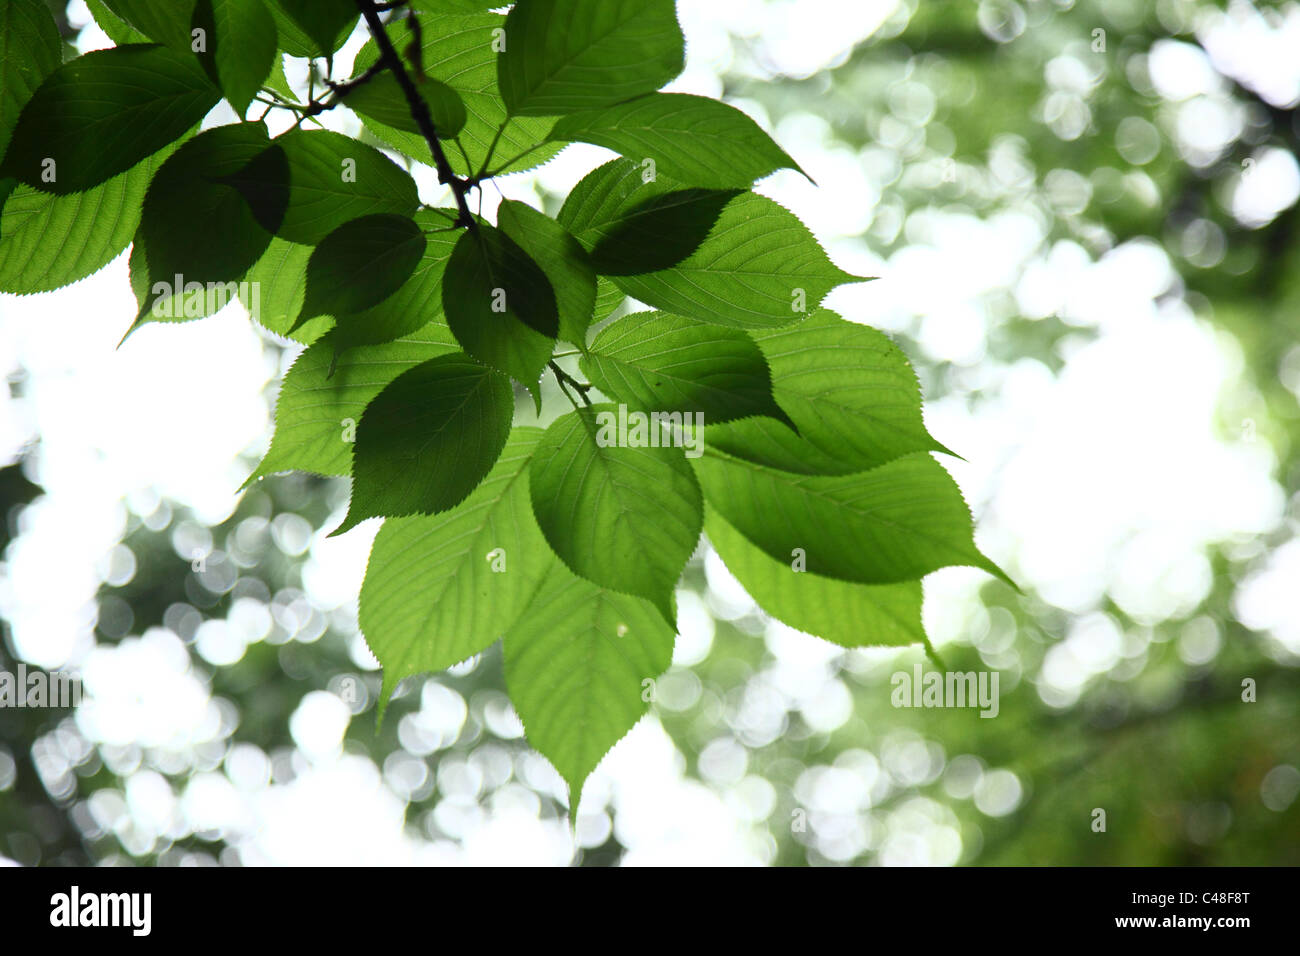 Detail of green leaves on tree - Stock Image